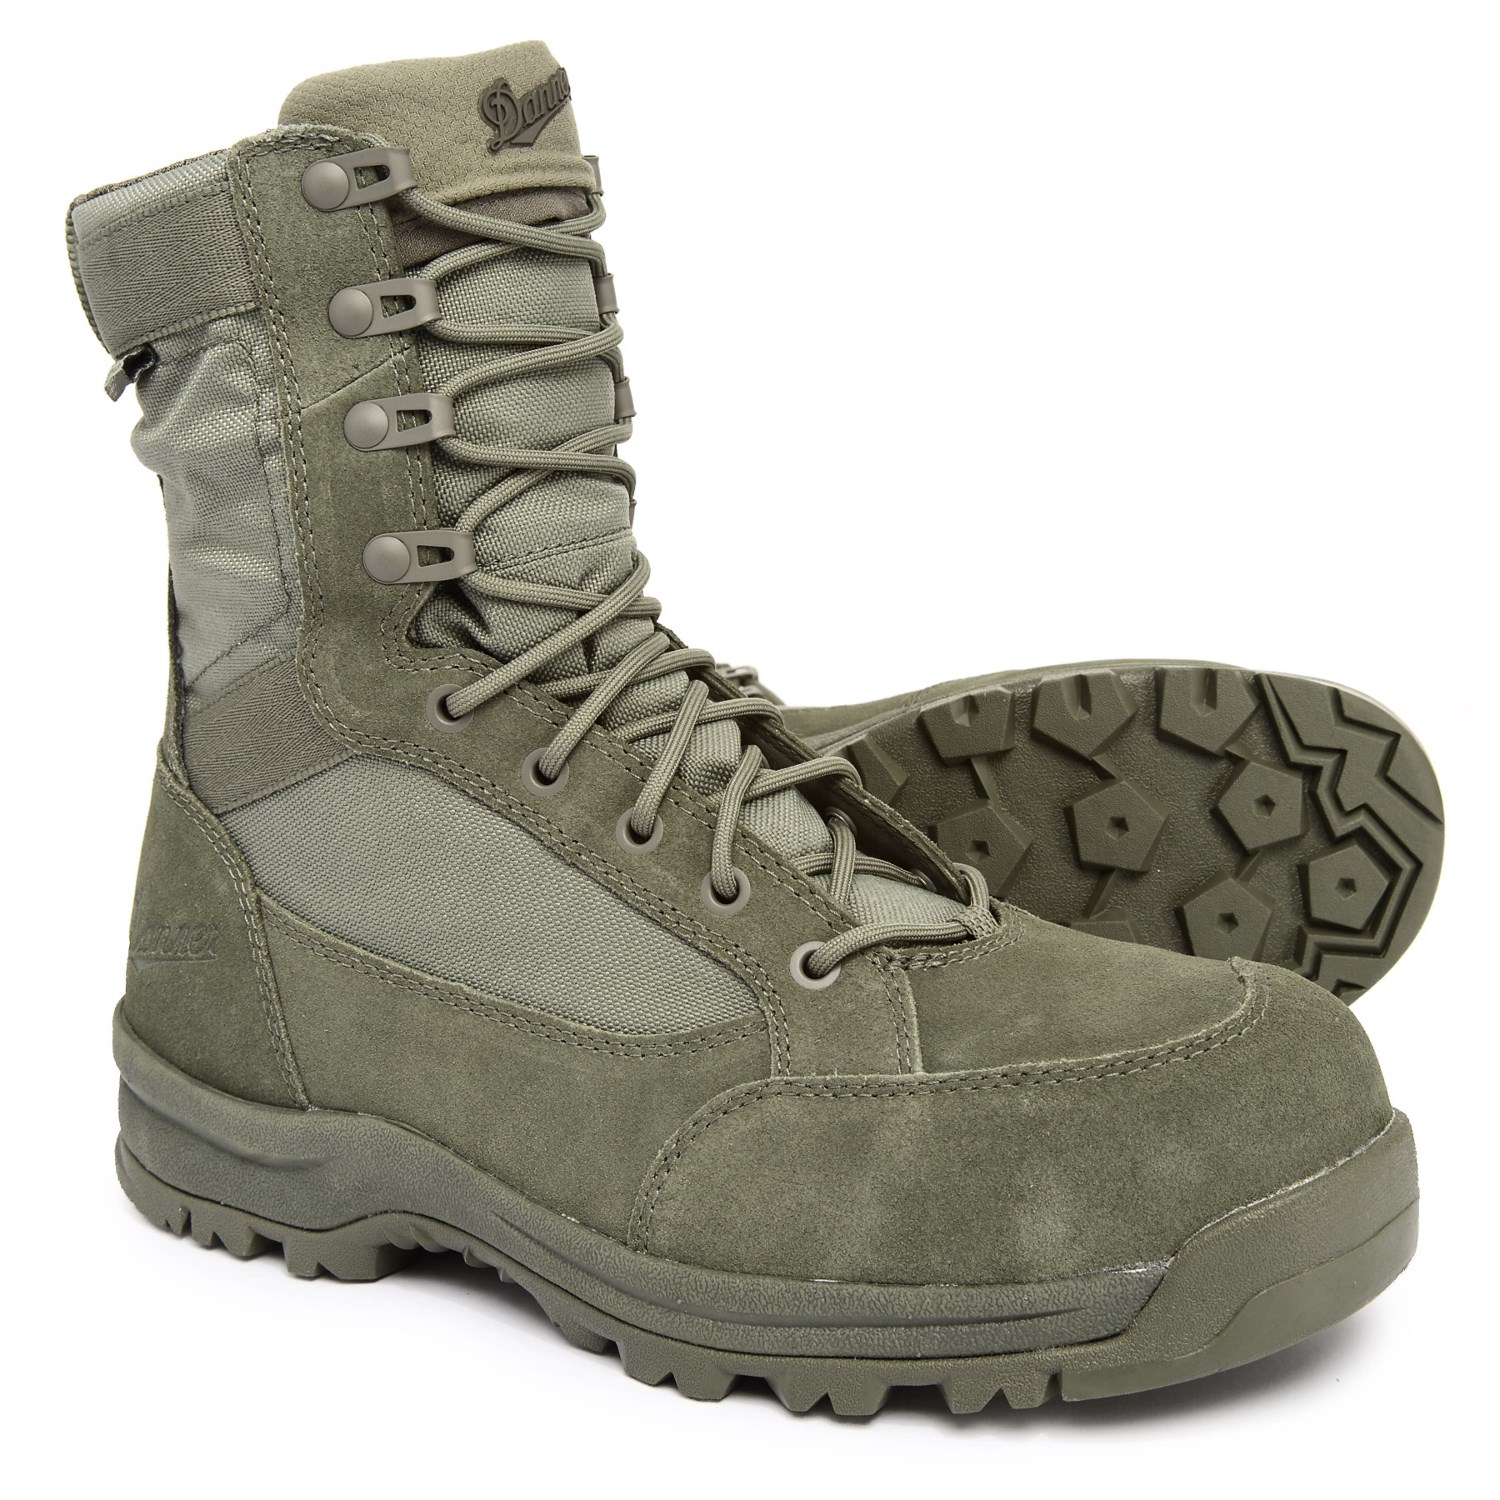 "1e31b3cc833 Danner 8"" Tanicus Military Work Boots - Composite Safety Toe, Waterproof  (For Men)"